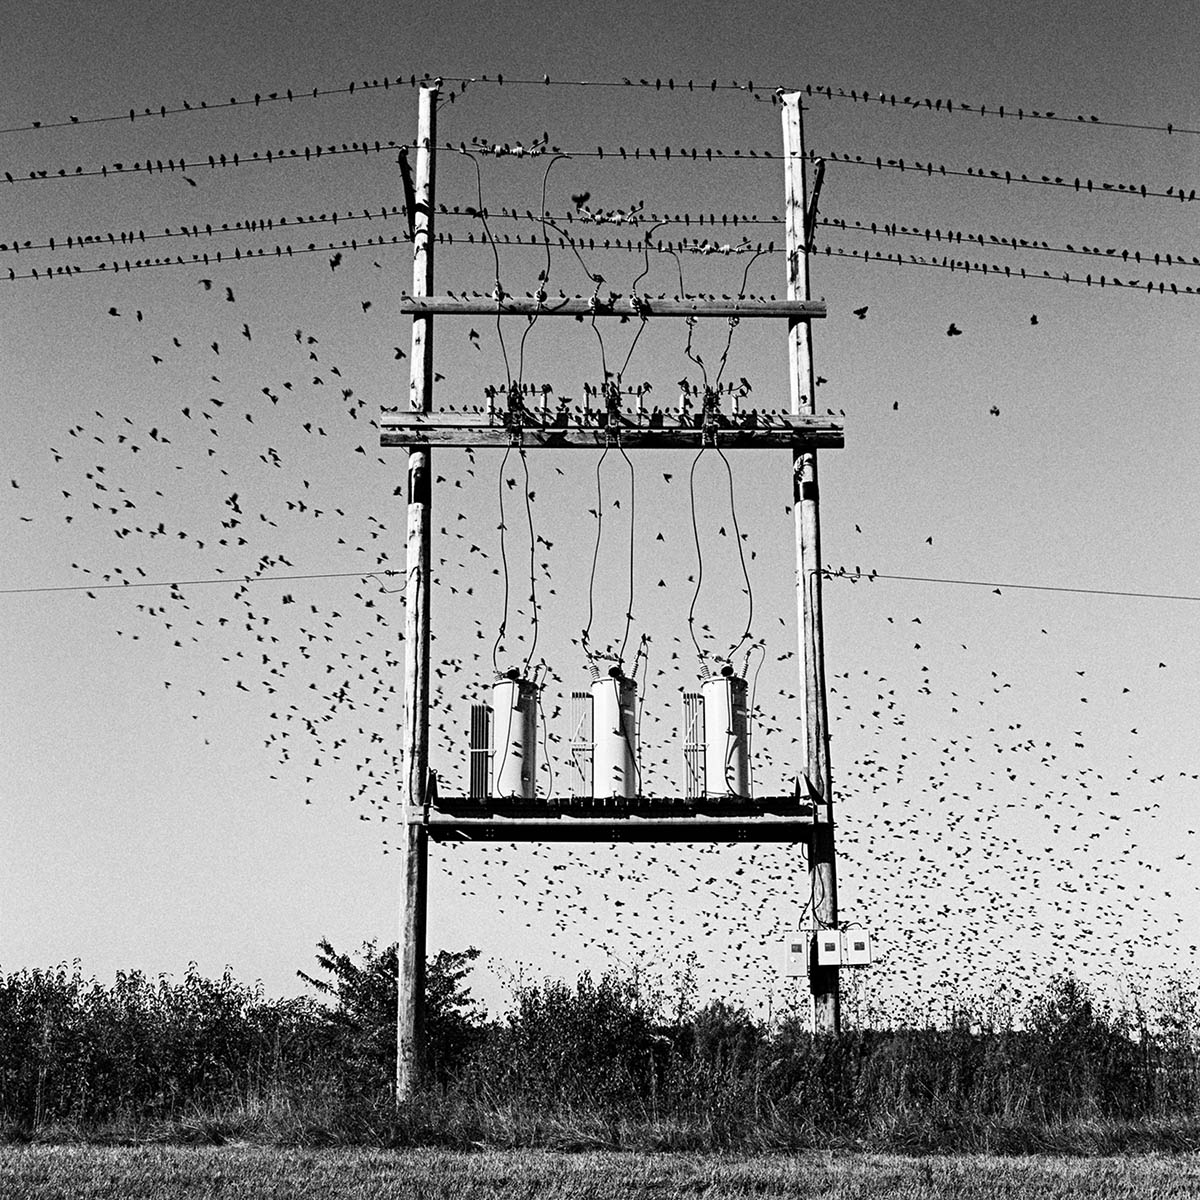 Birds & Transformers, Missouri, 1997